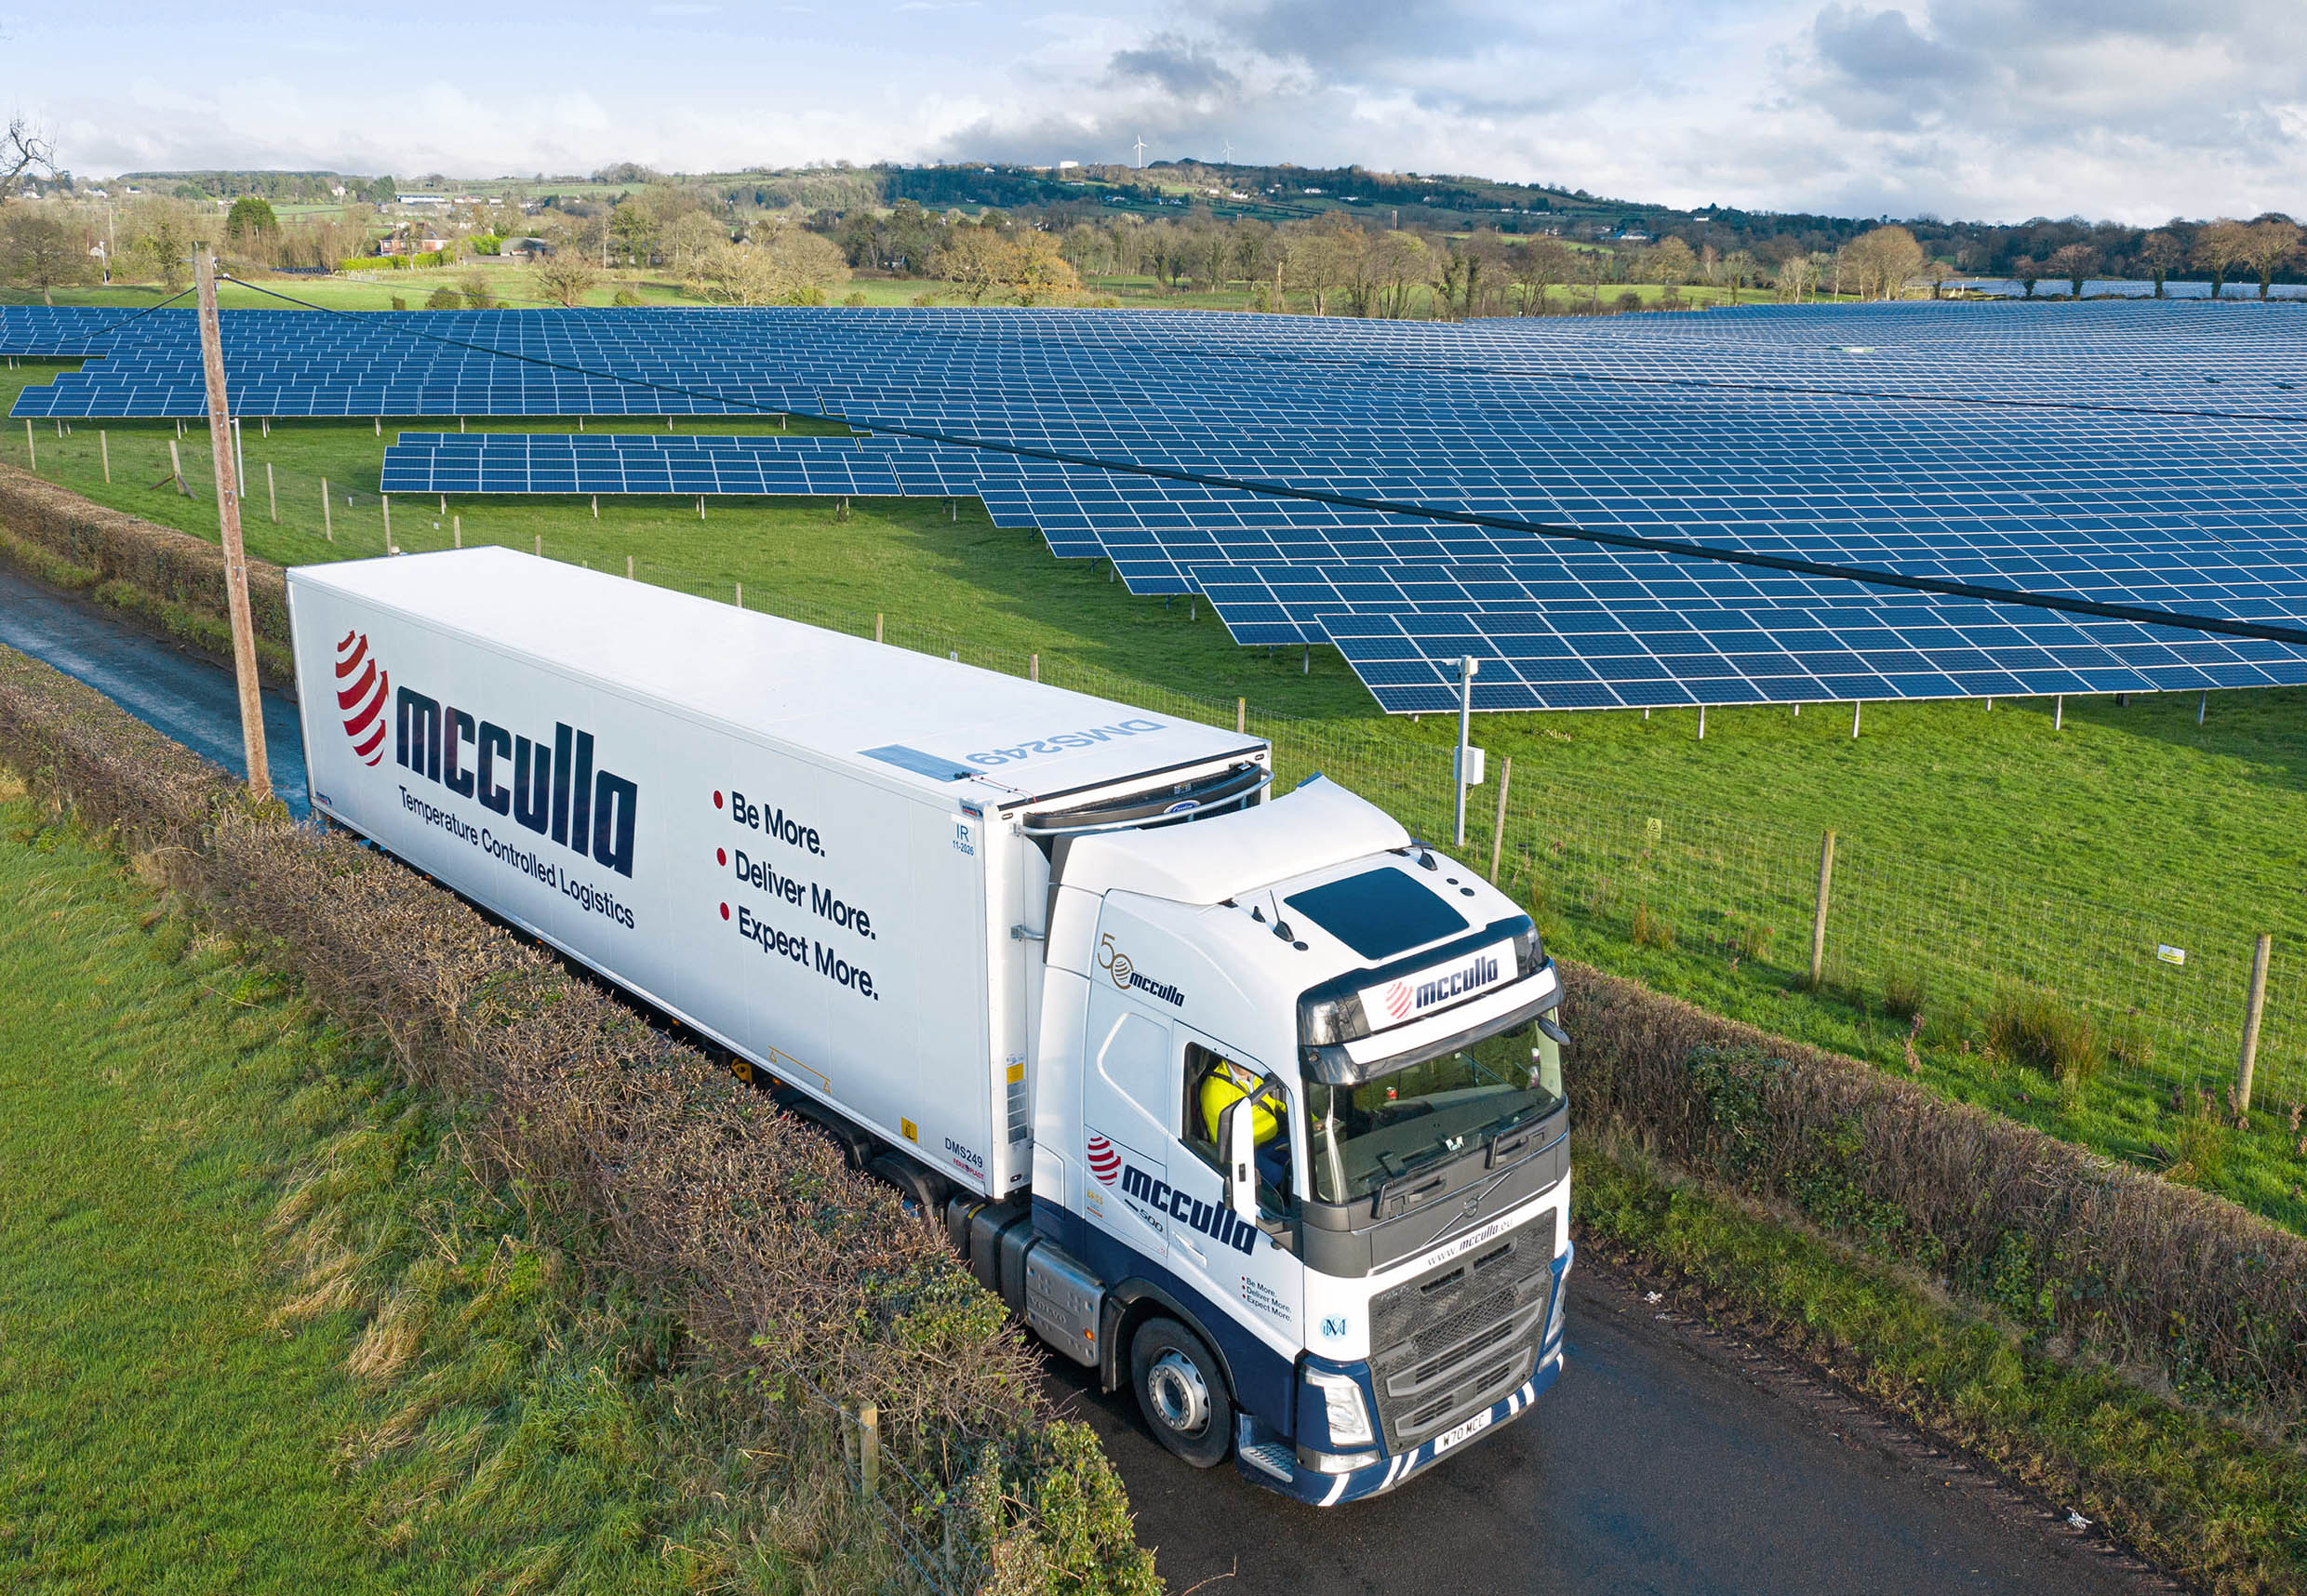 McCulla protects fridge power with Genie Insights solar technology